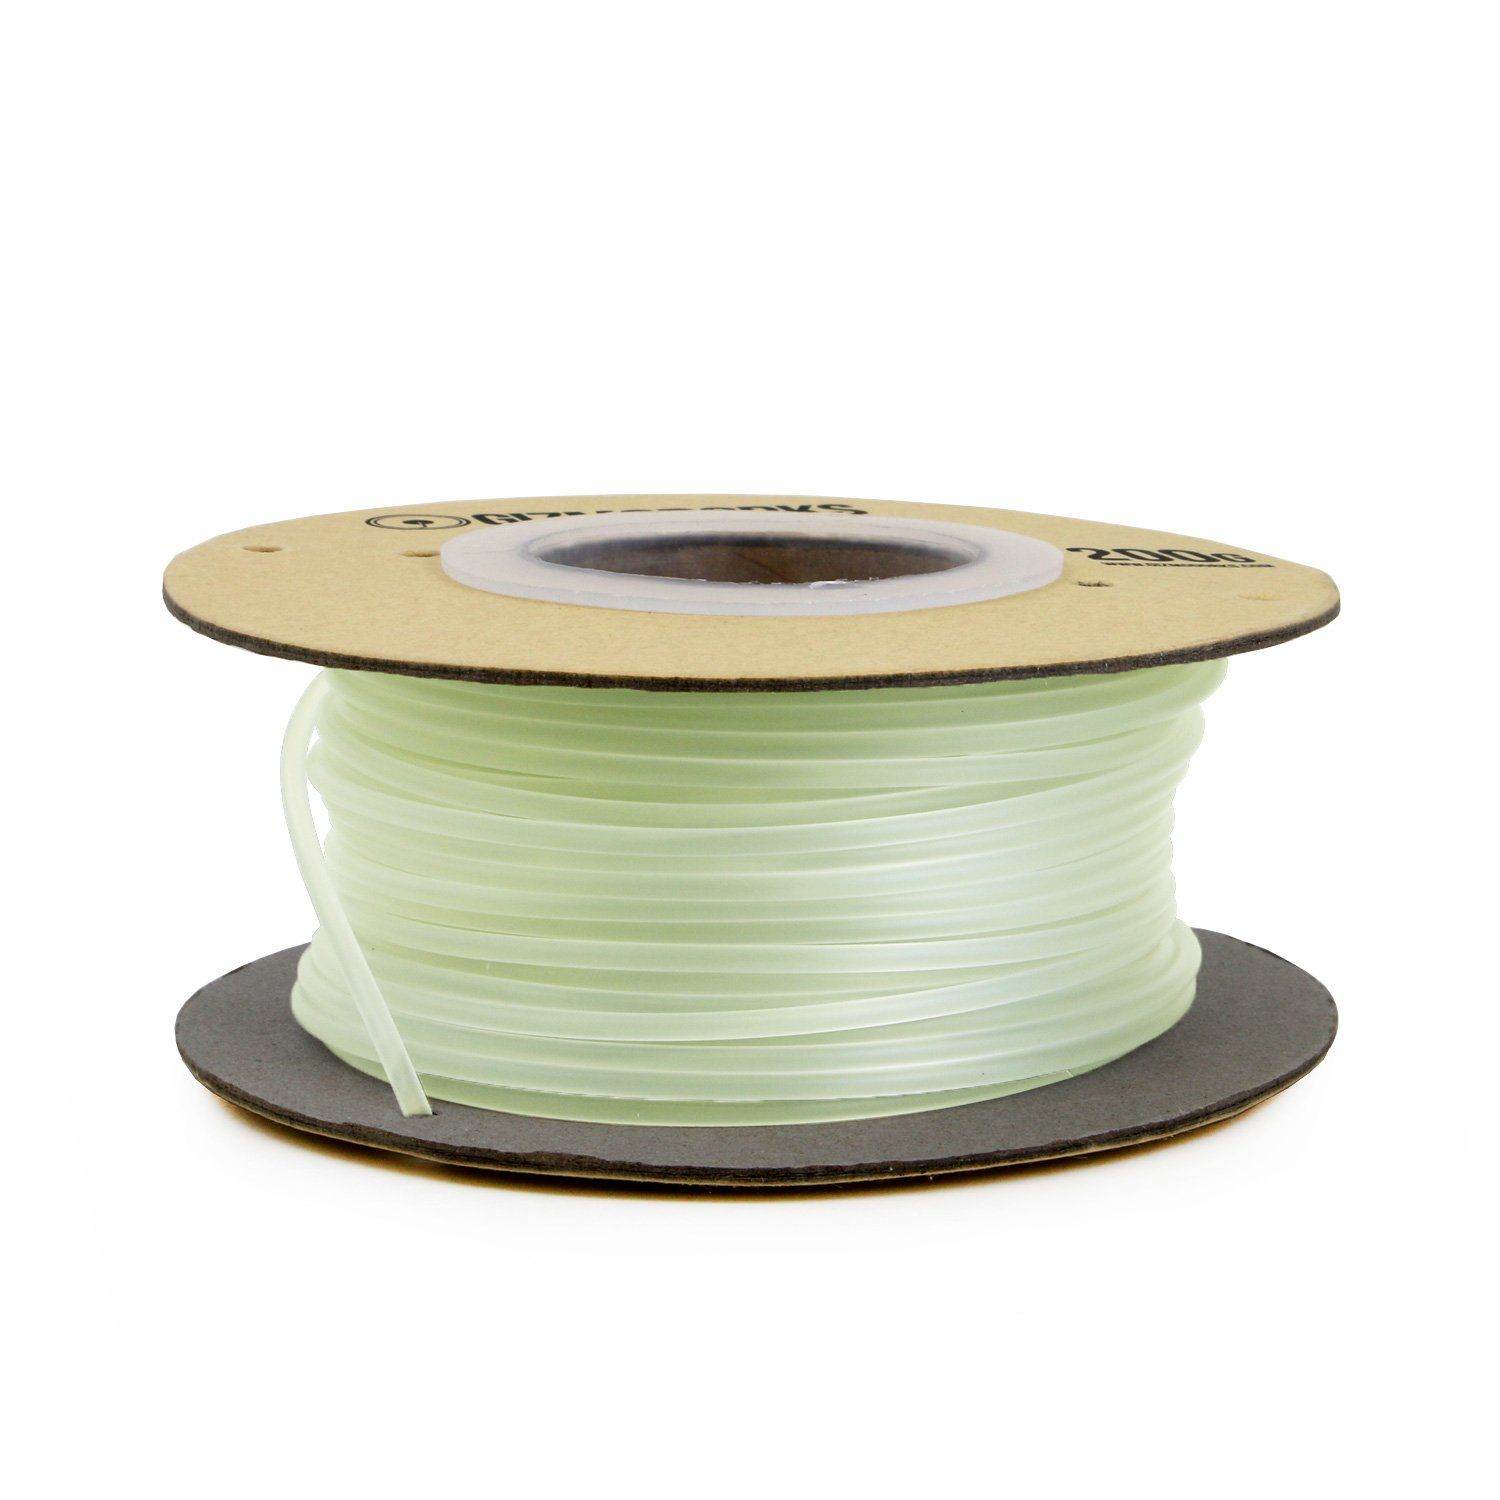 Gizmo Dorks ABS Filament for 3D Printers 1.75mm 200g Glow in The Dark